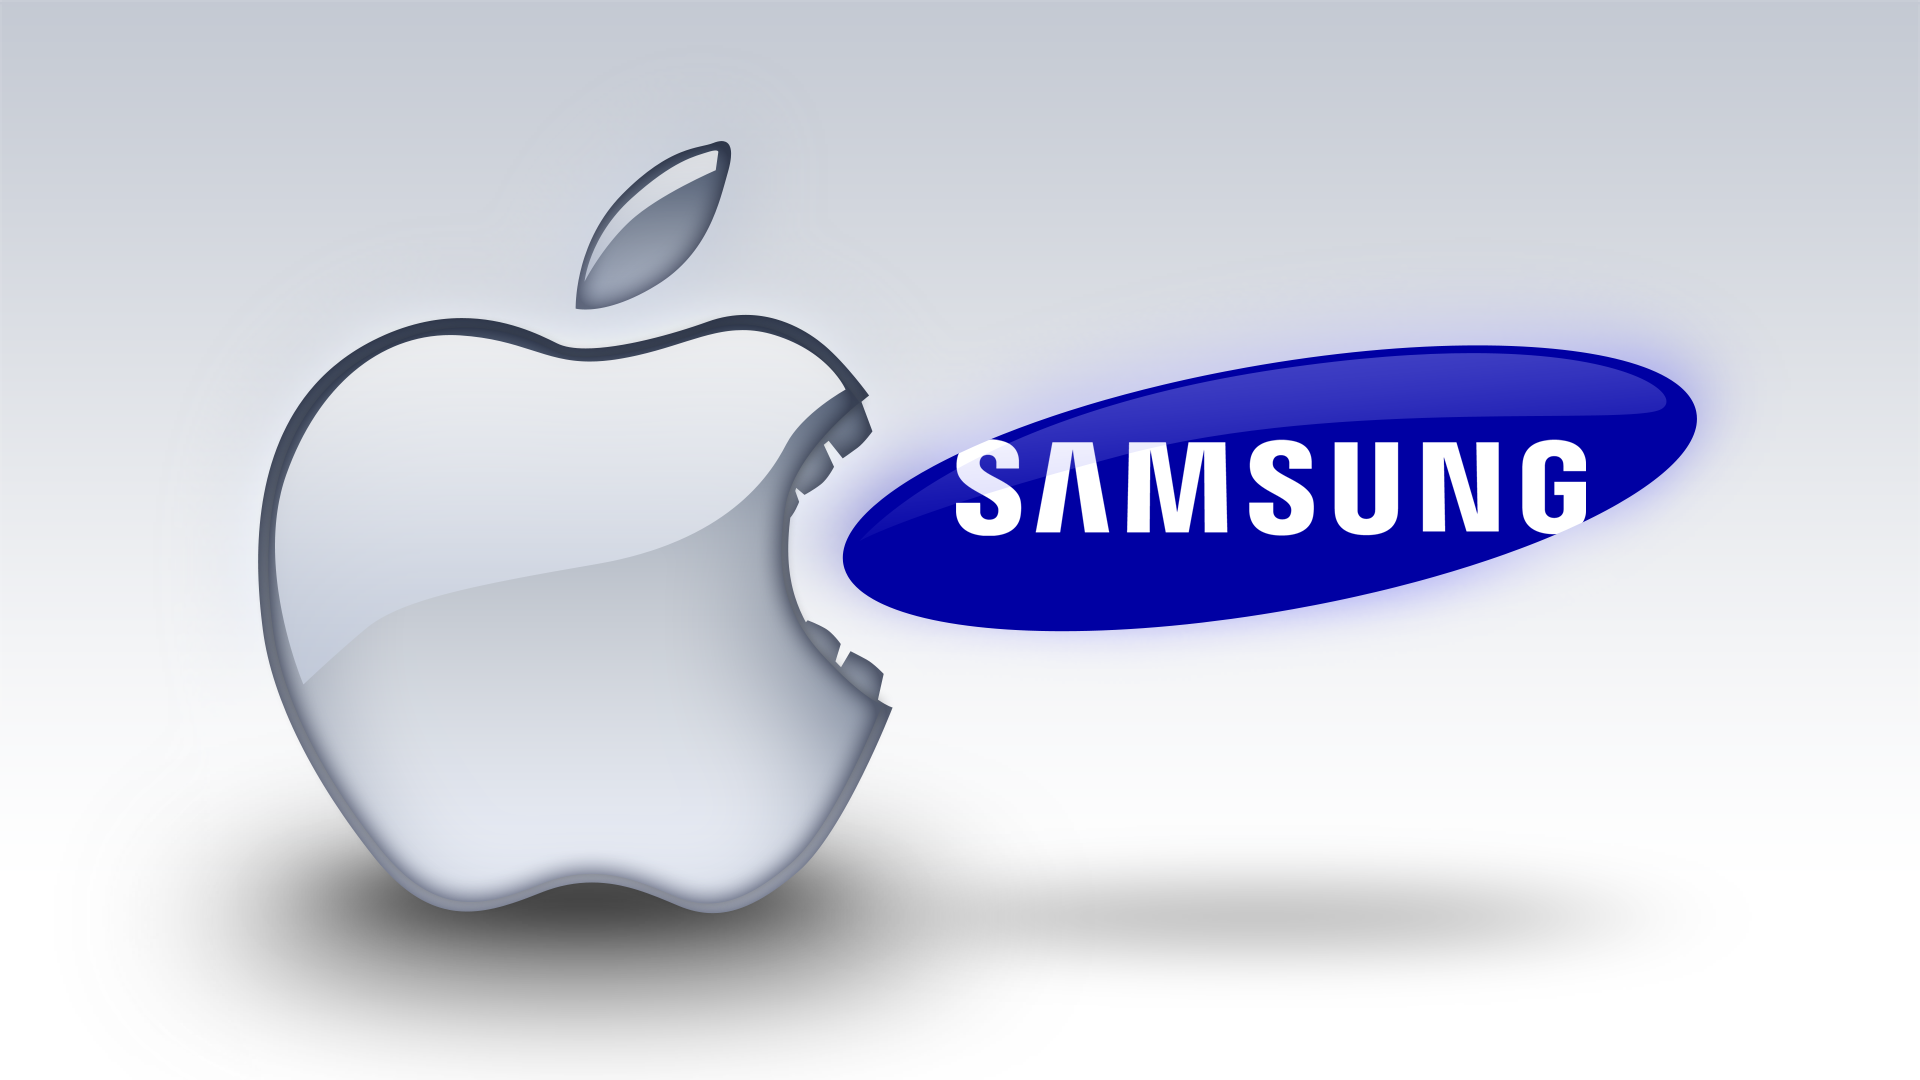 Samsung-vs-Apple